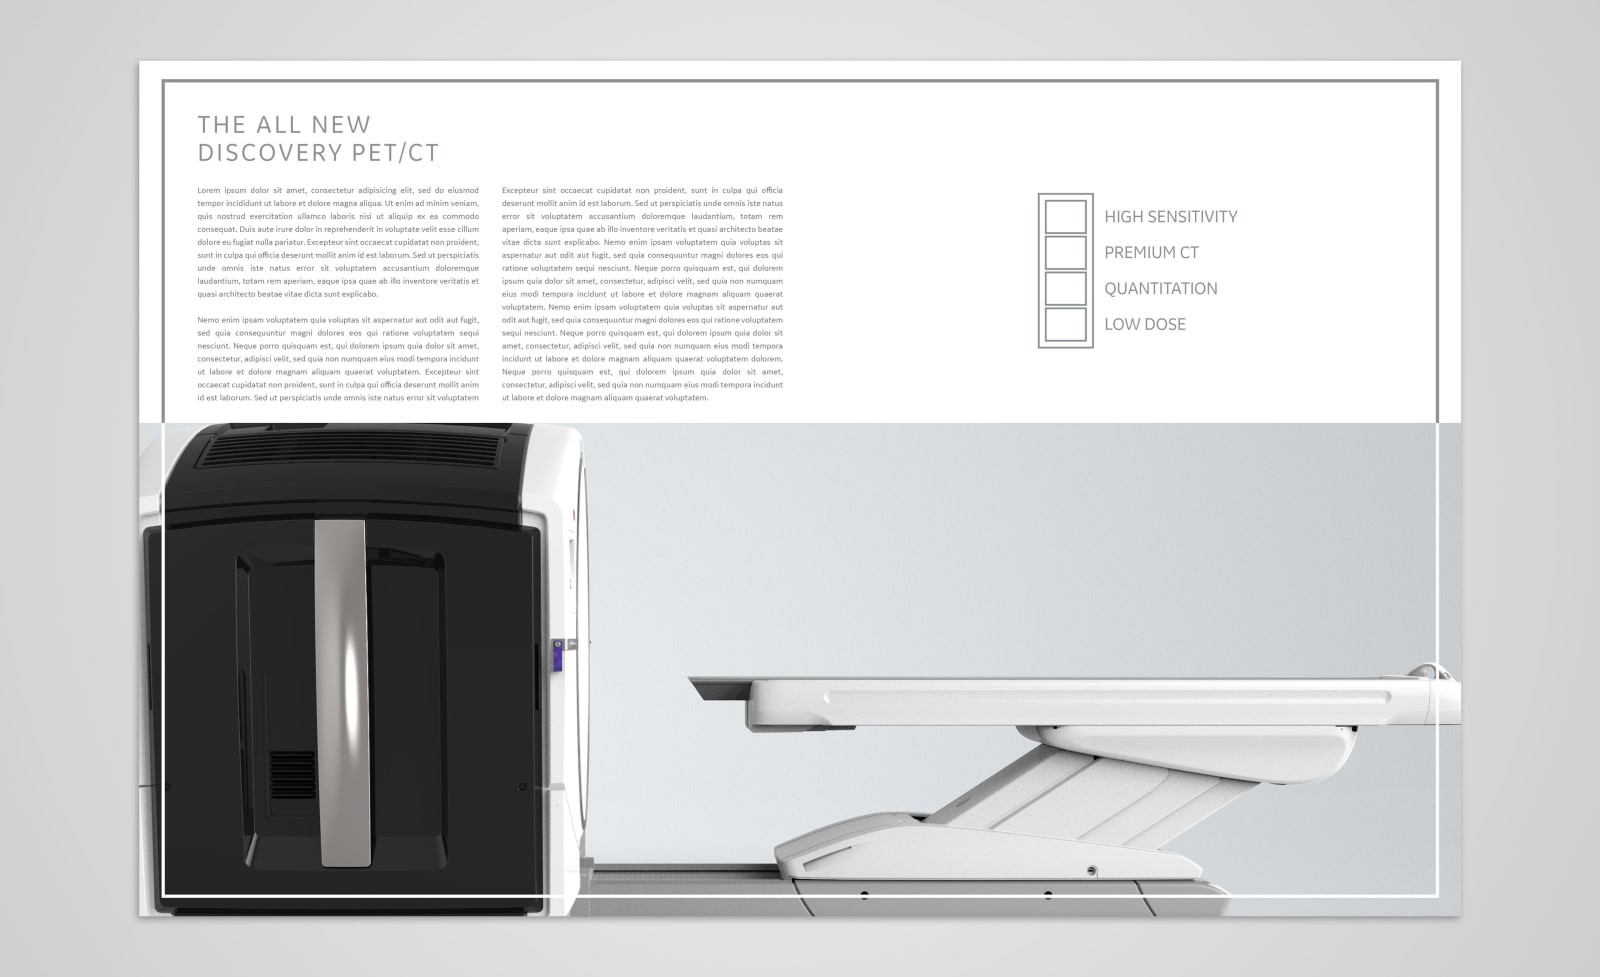 GE Discovery GE Discovery Elegance PET/CT Spread